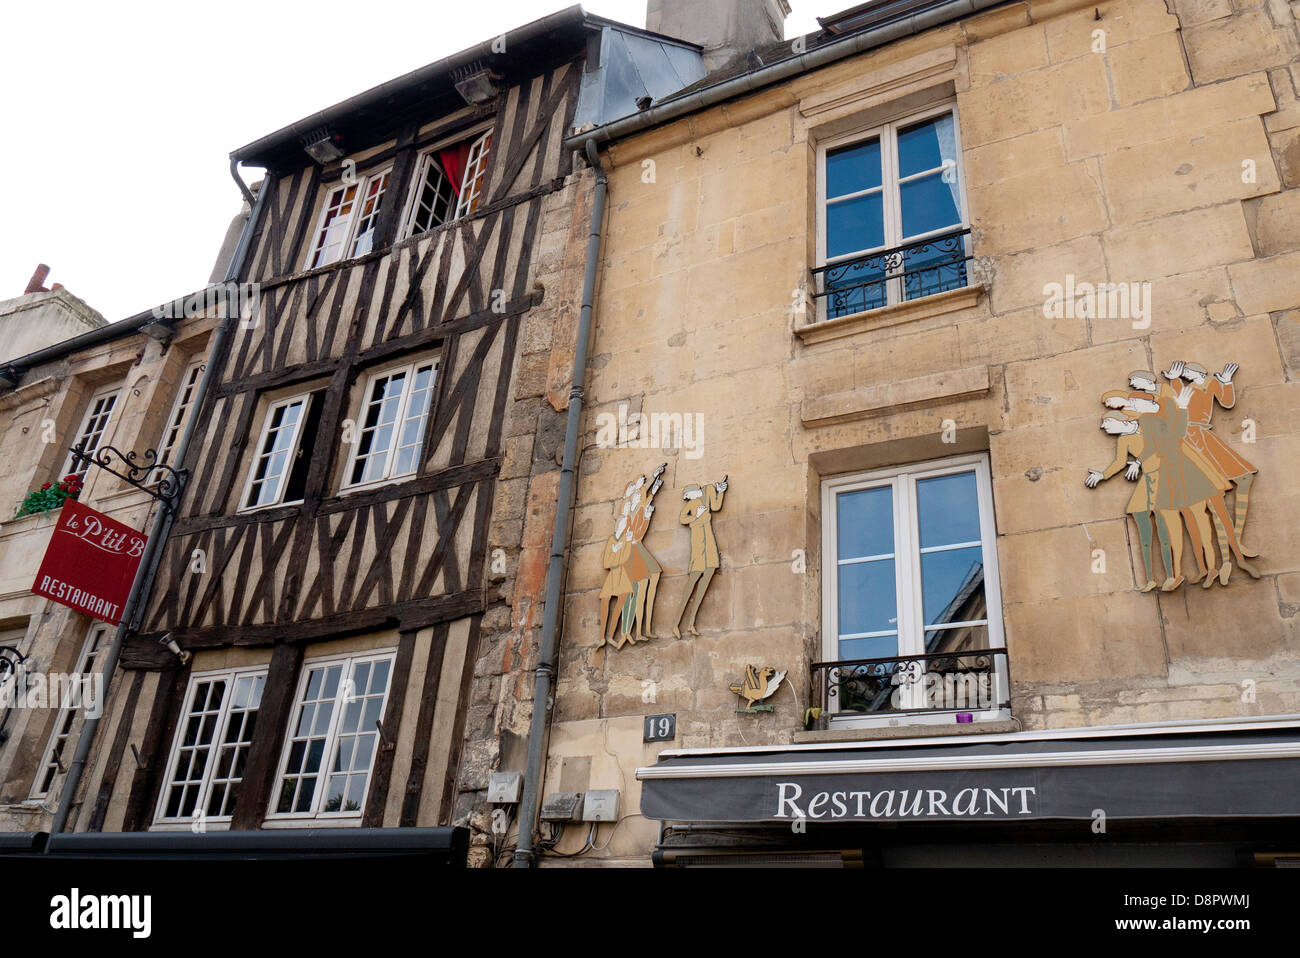 old normandy buildings in caen normandy france stock photo royalty free image 57051474 alamy. Black Bedroom Furniture Sets. Home Design Ideas